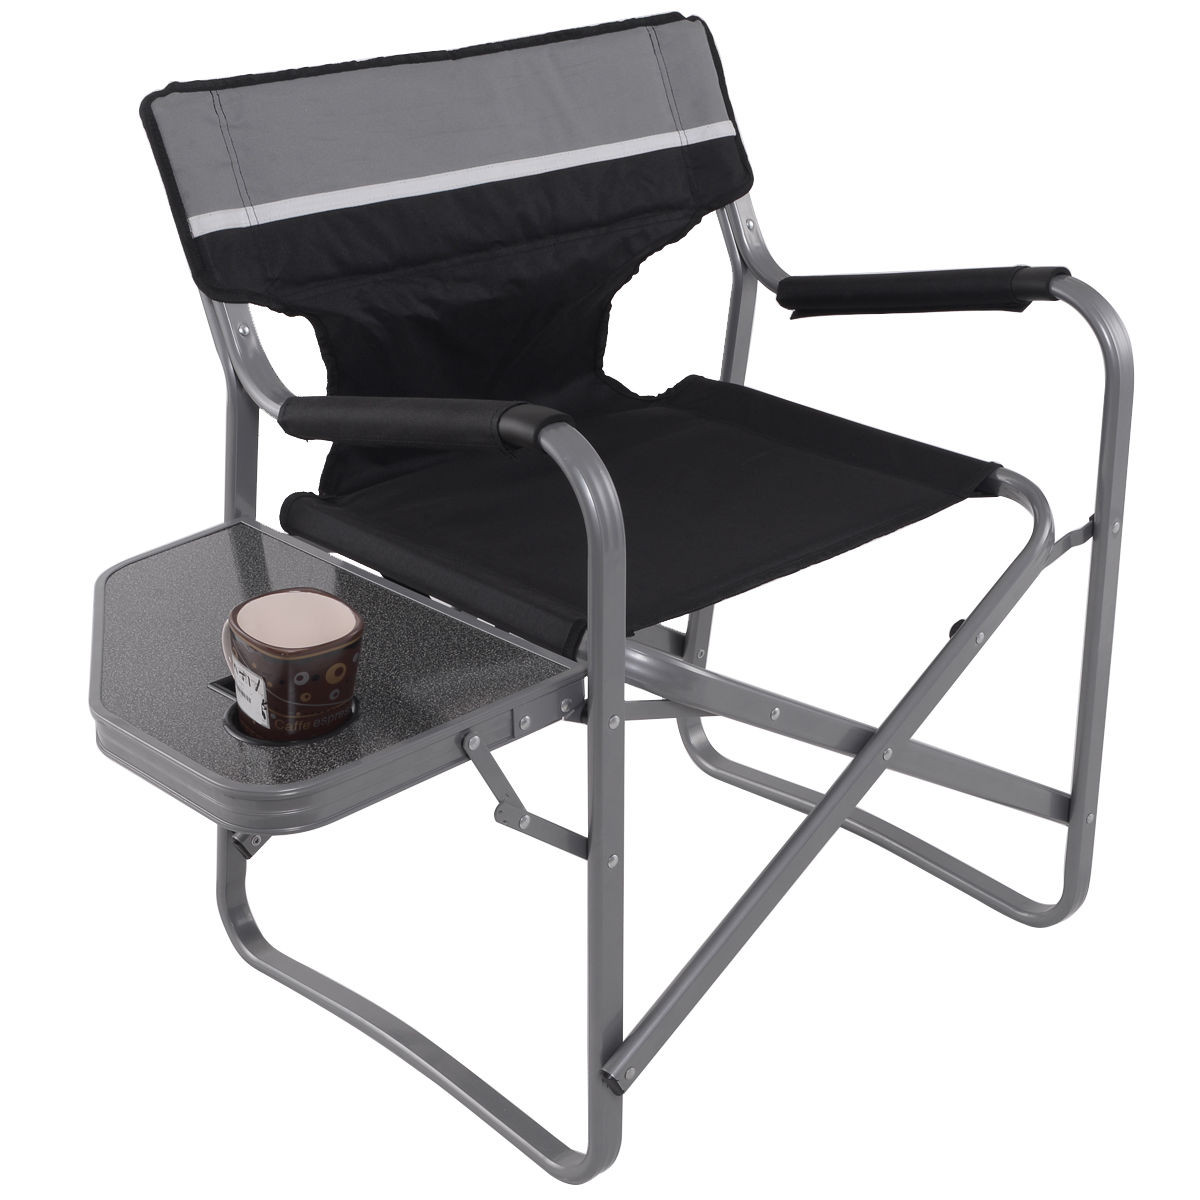 folding directors chairs high back outdoor chair cushions australia camping director 39s with cup holder